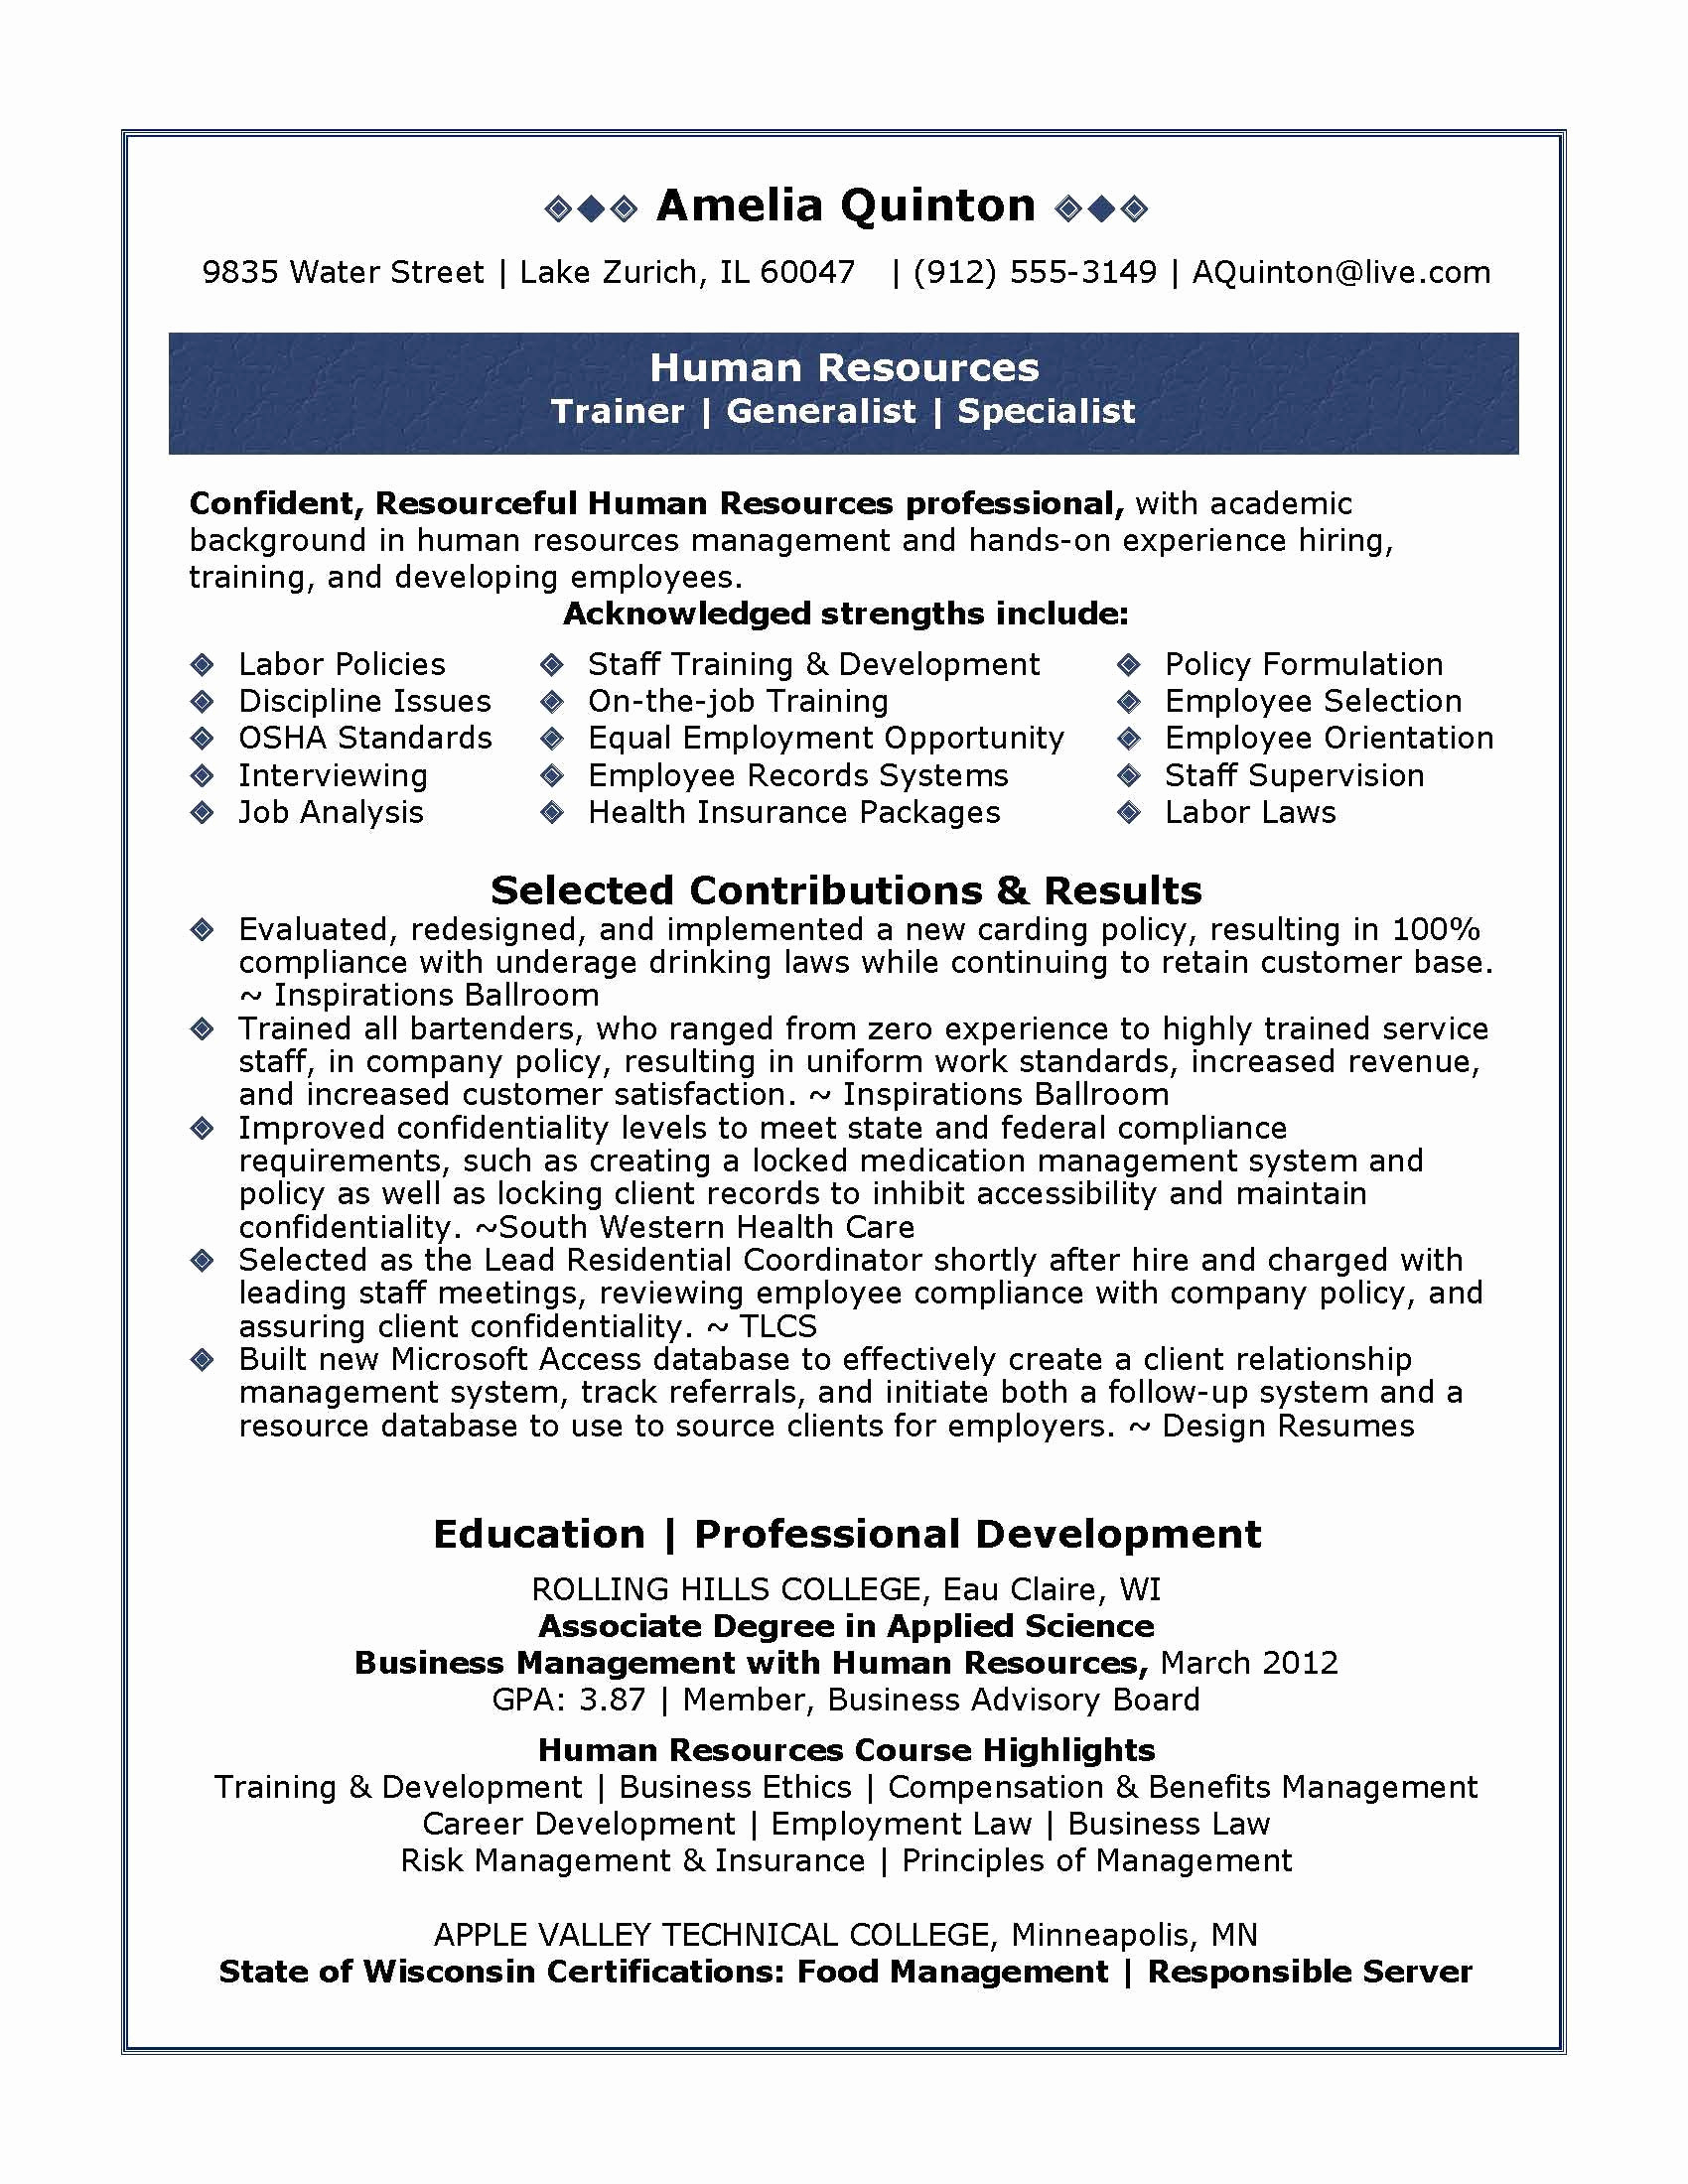 Interview Cover Letter Template - Cover Letter Templet Samples